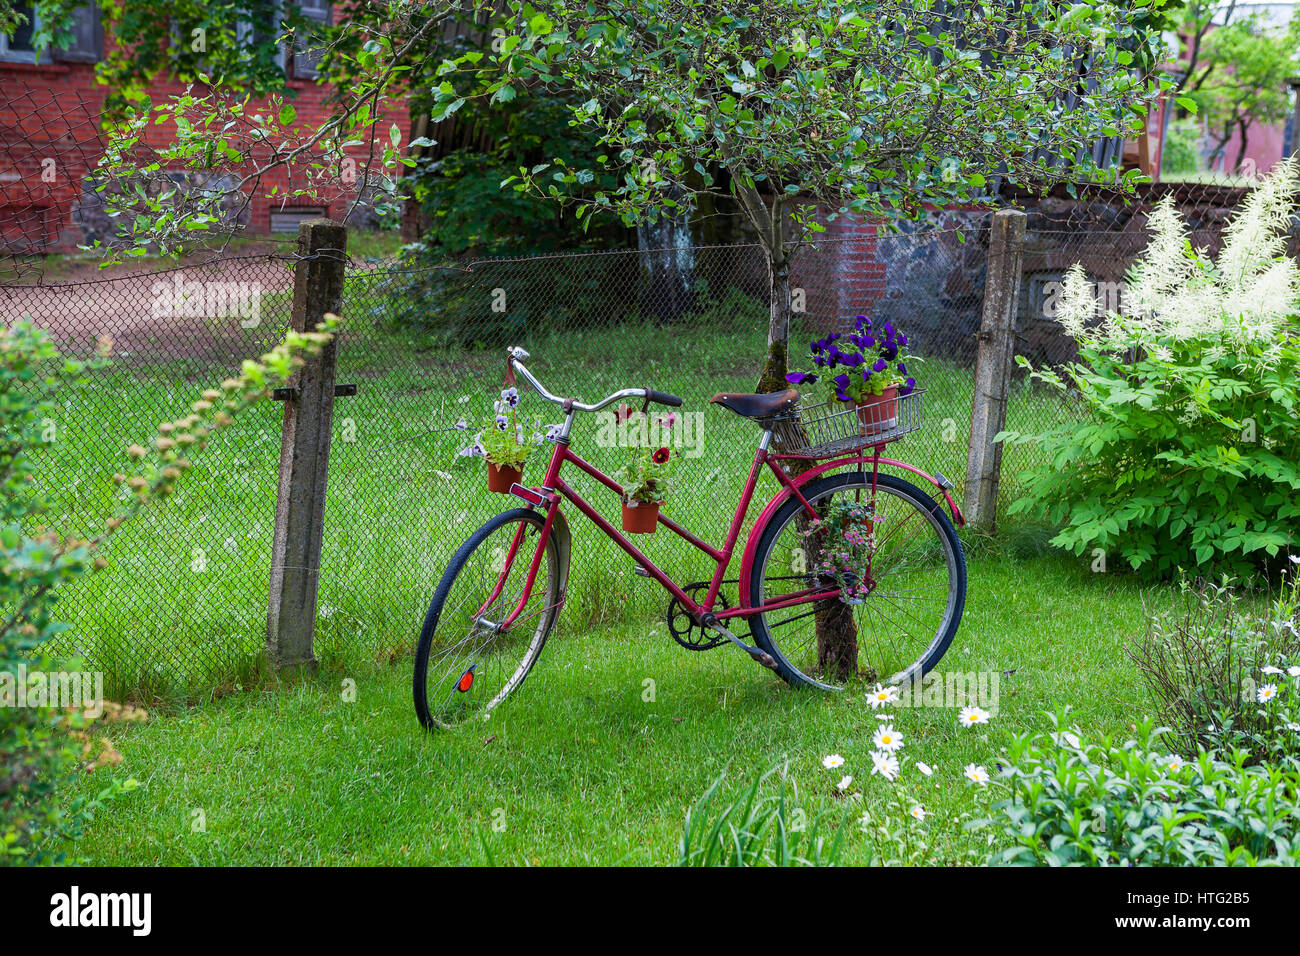 Vintage Bicycle With Flowers In The Green Garden